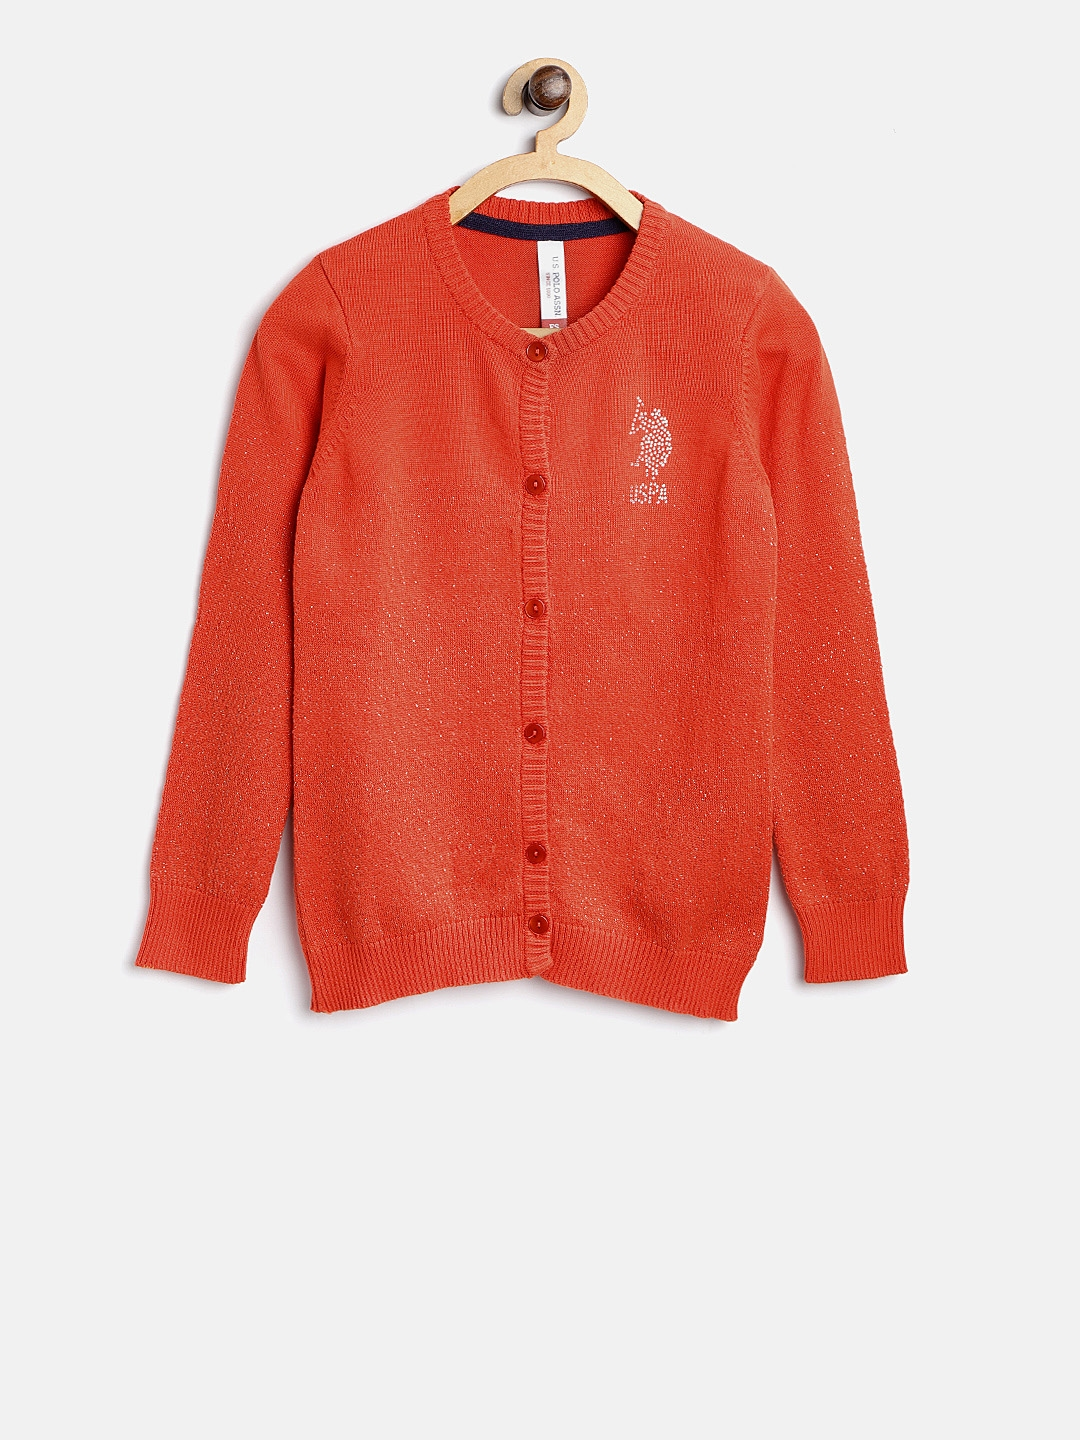 d25b0f1b8e545 Buy U.S. Polo Assn. Kids Girls Orange Solid Cardigan With Shimmer ...